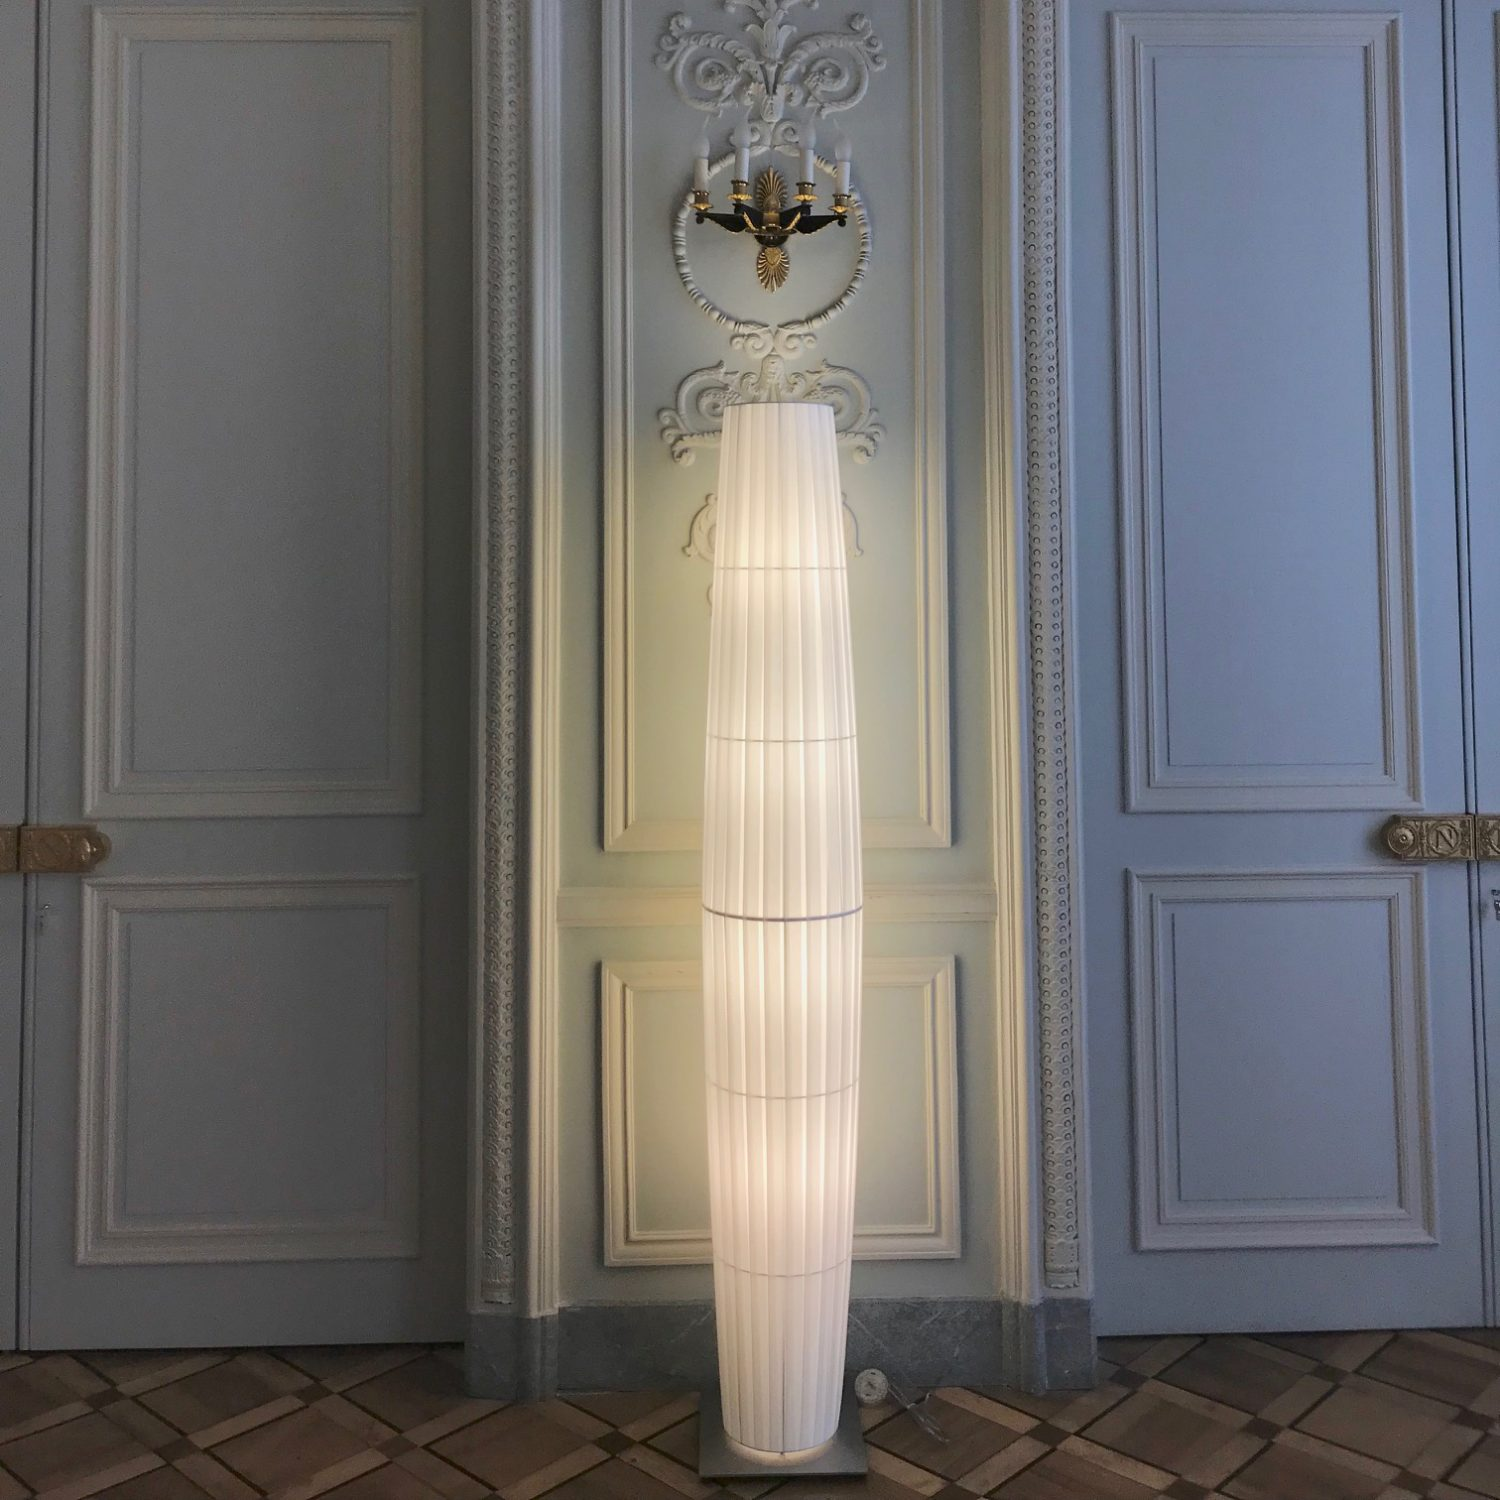 Colonne 1.90m ref.H161 - Conseil Constitutionnel de France / prescription Denise Omer Design